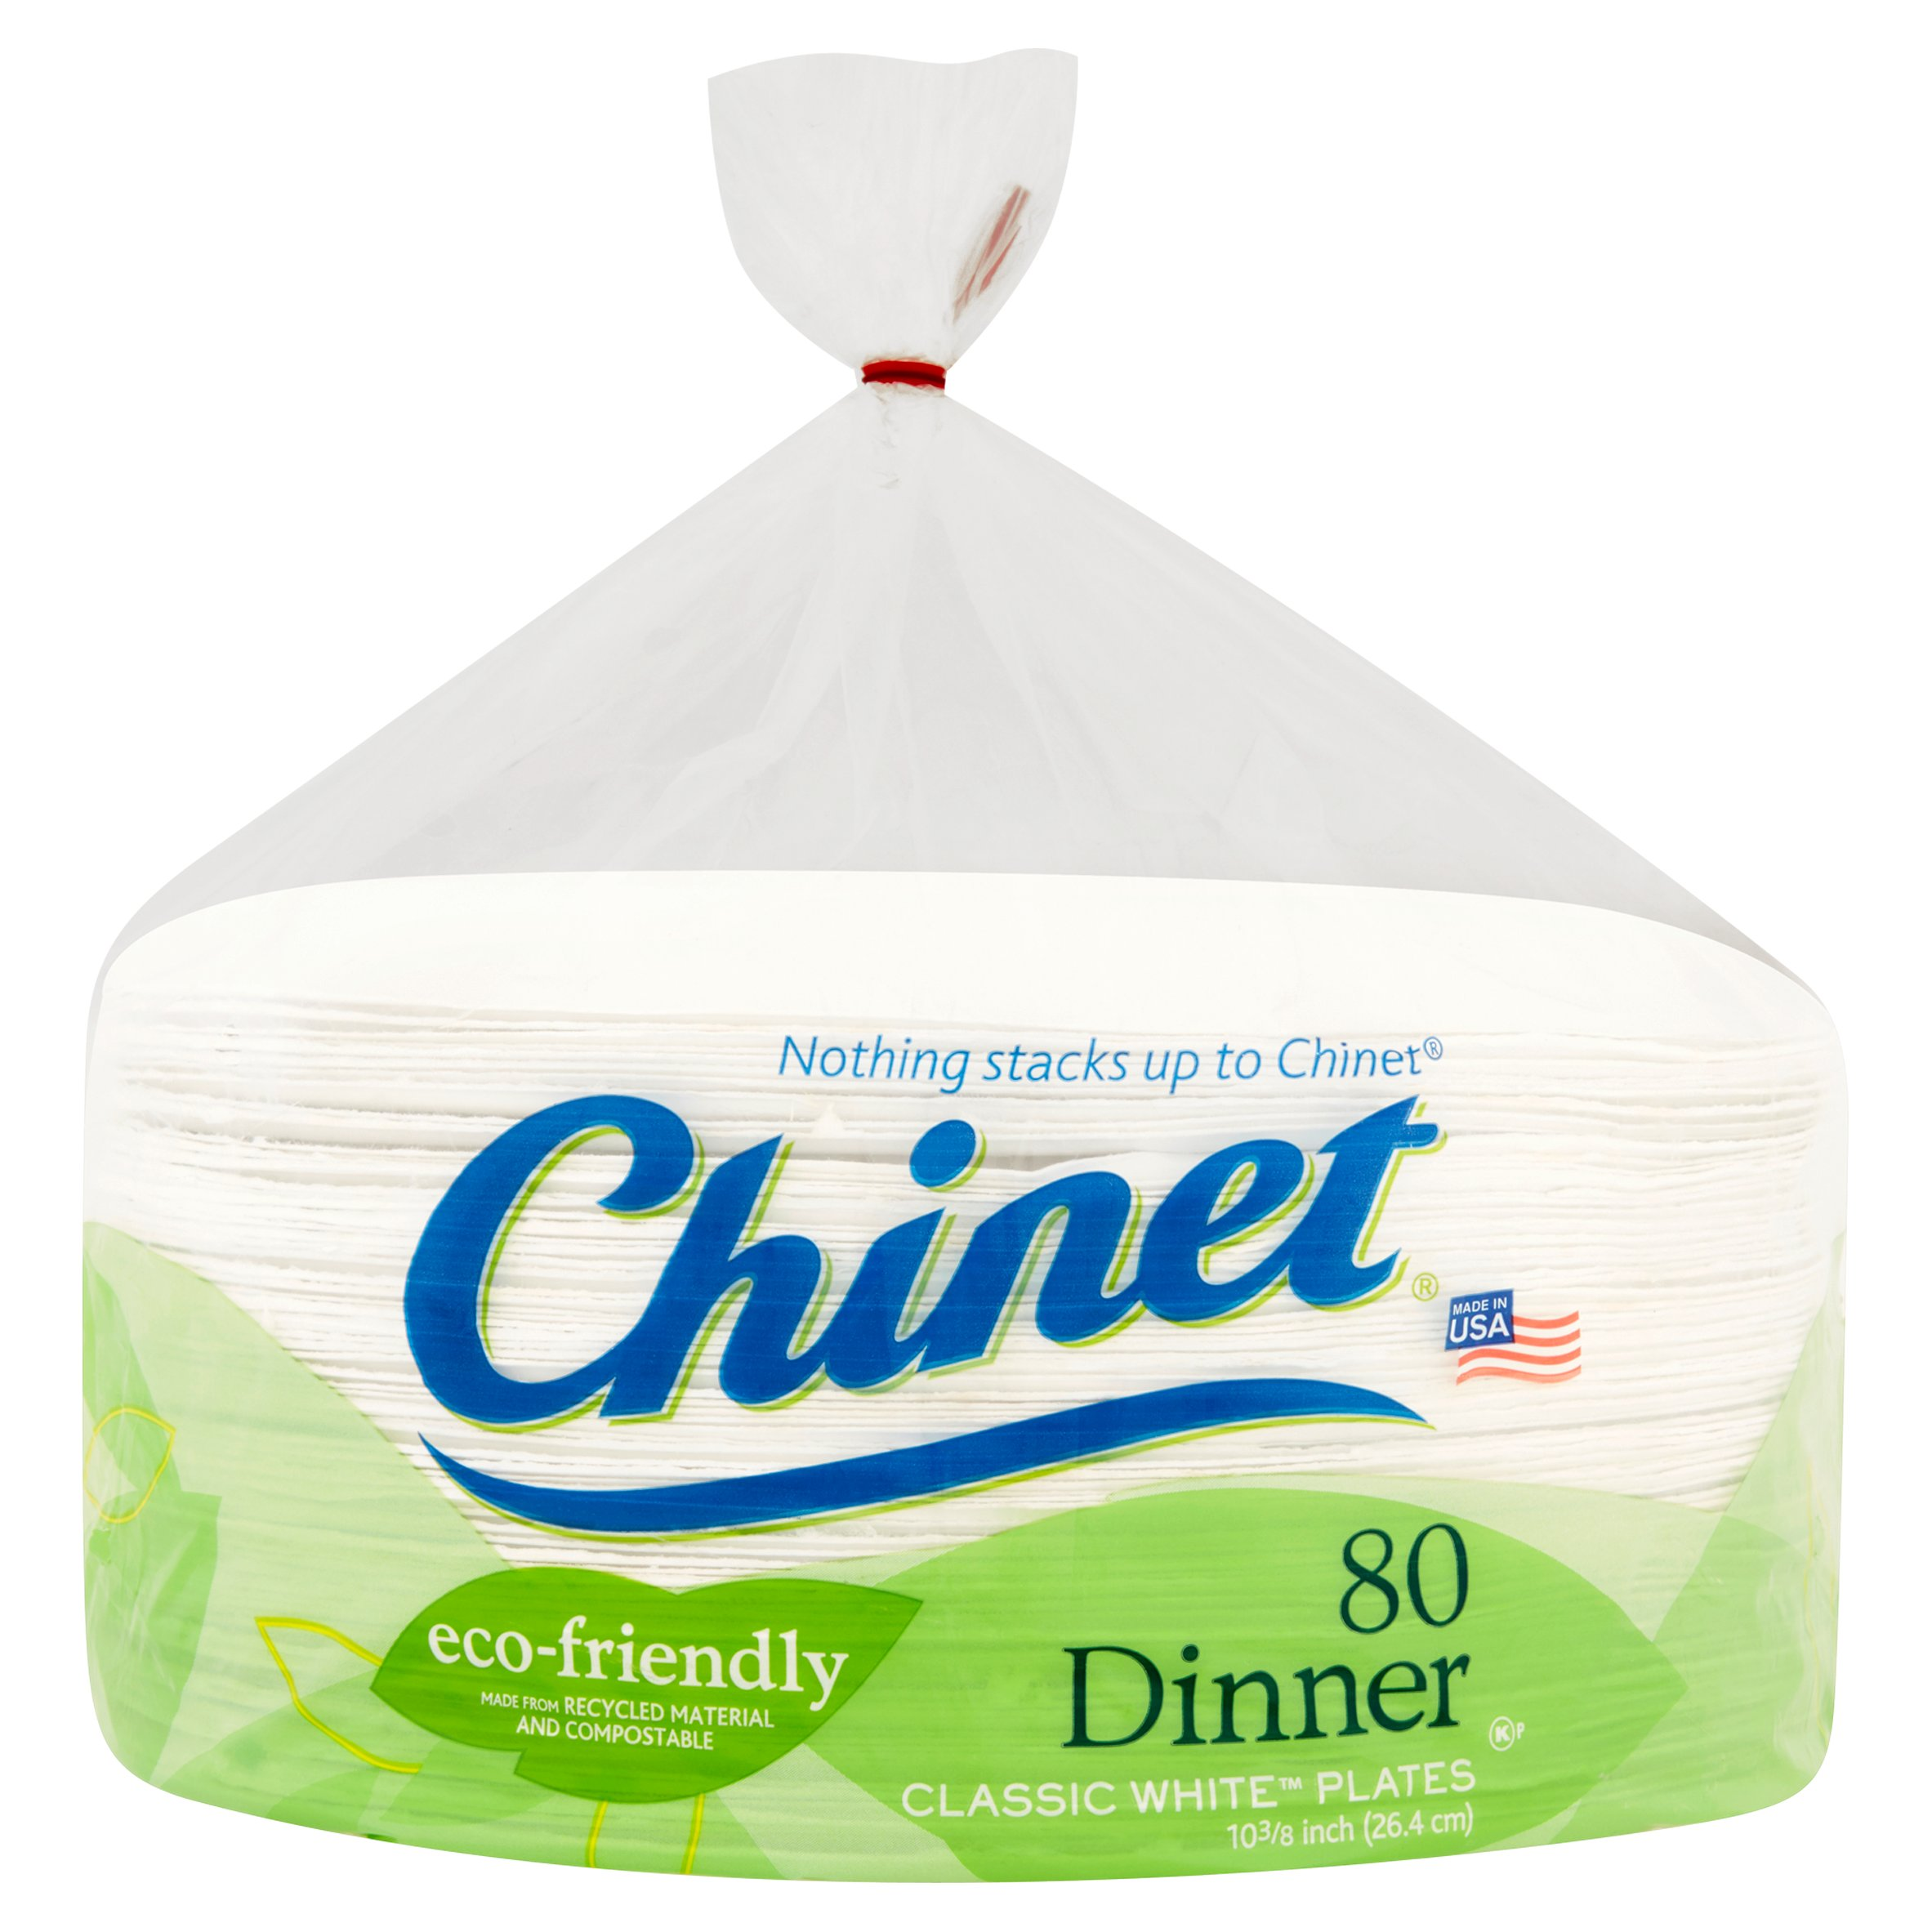 "Chinet Dinner Classic White Plates, 10 3/8"", 80 Count"